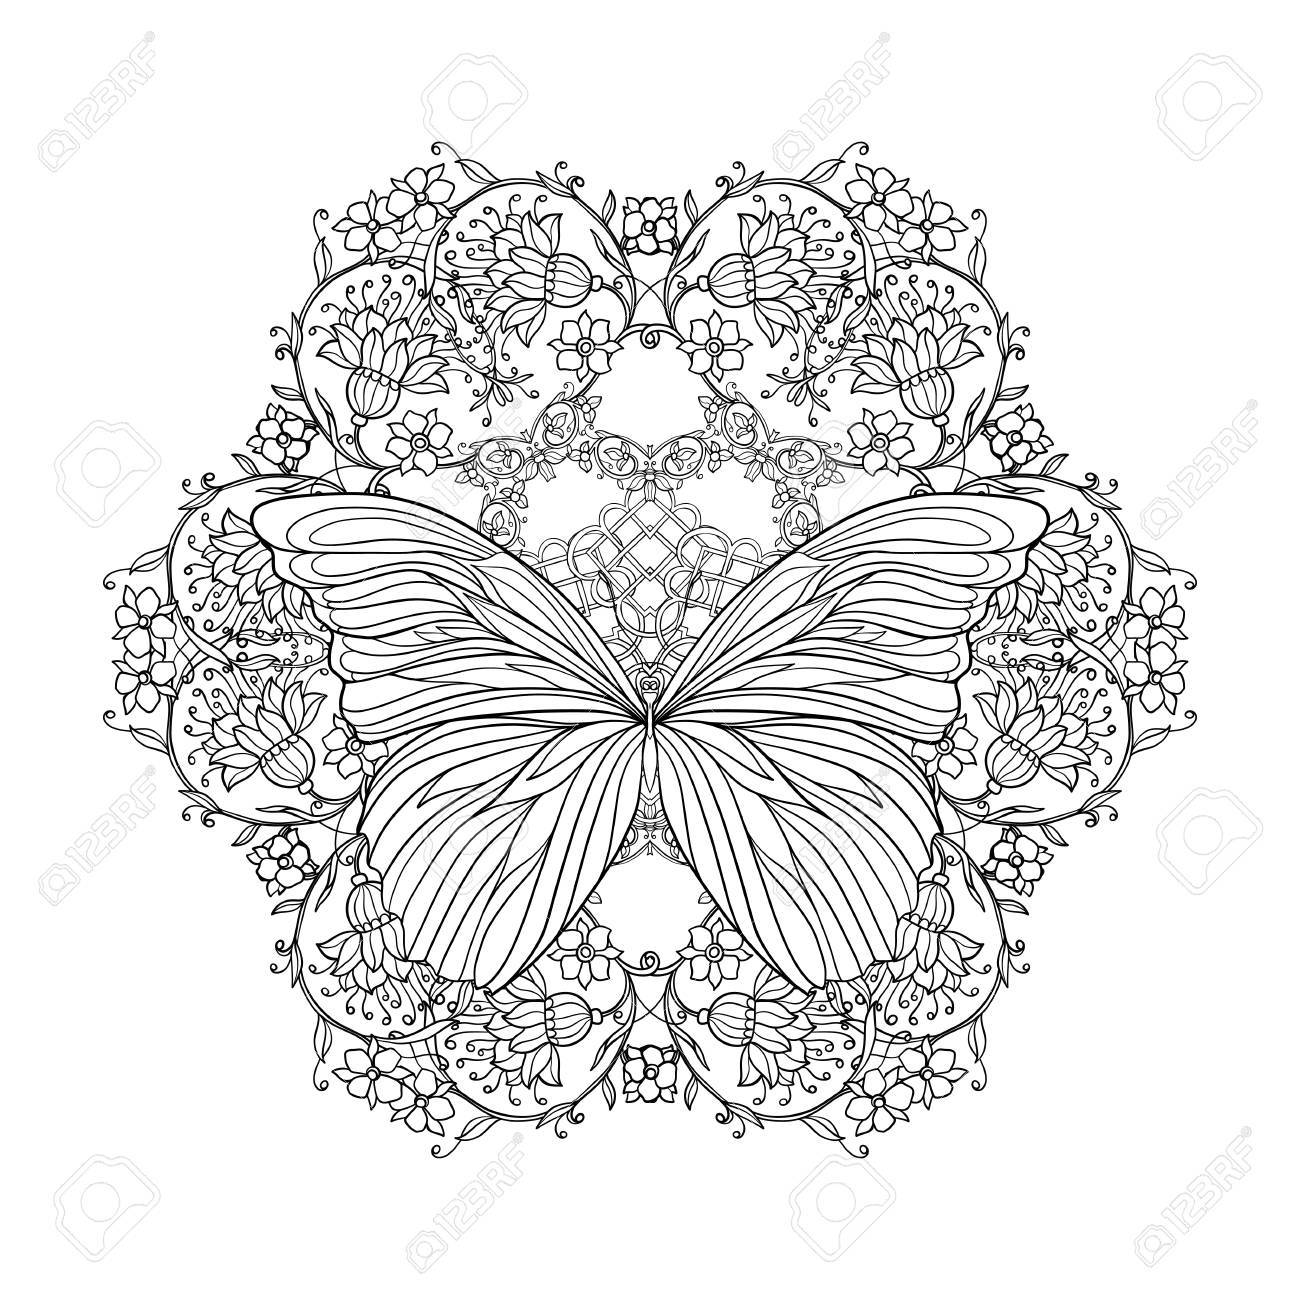 Fiori Mandala.Coloring Book For Adult And Older Children Coloring Page With